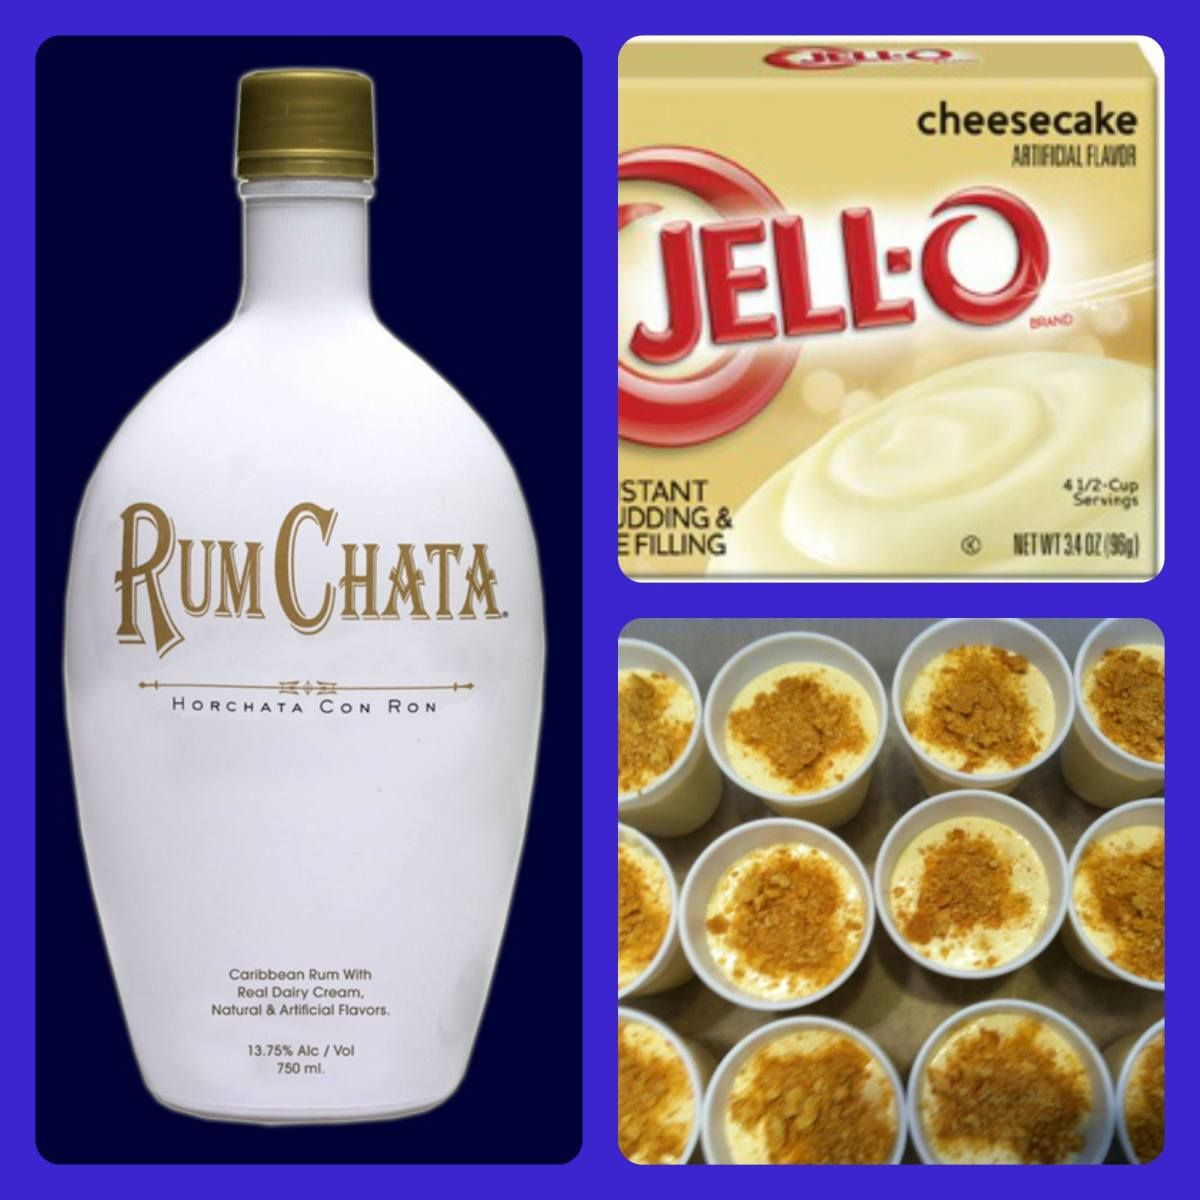 Rum Chata Cheesecake Pudding Shots Servings: 12 Prep: 5